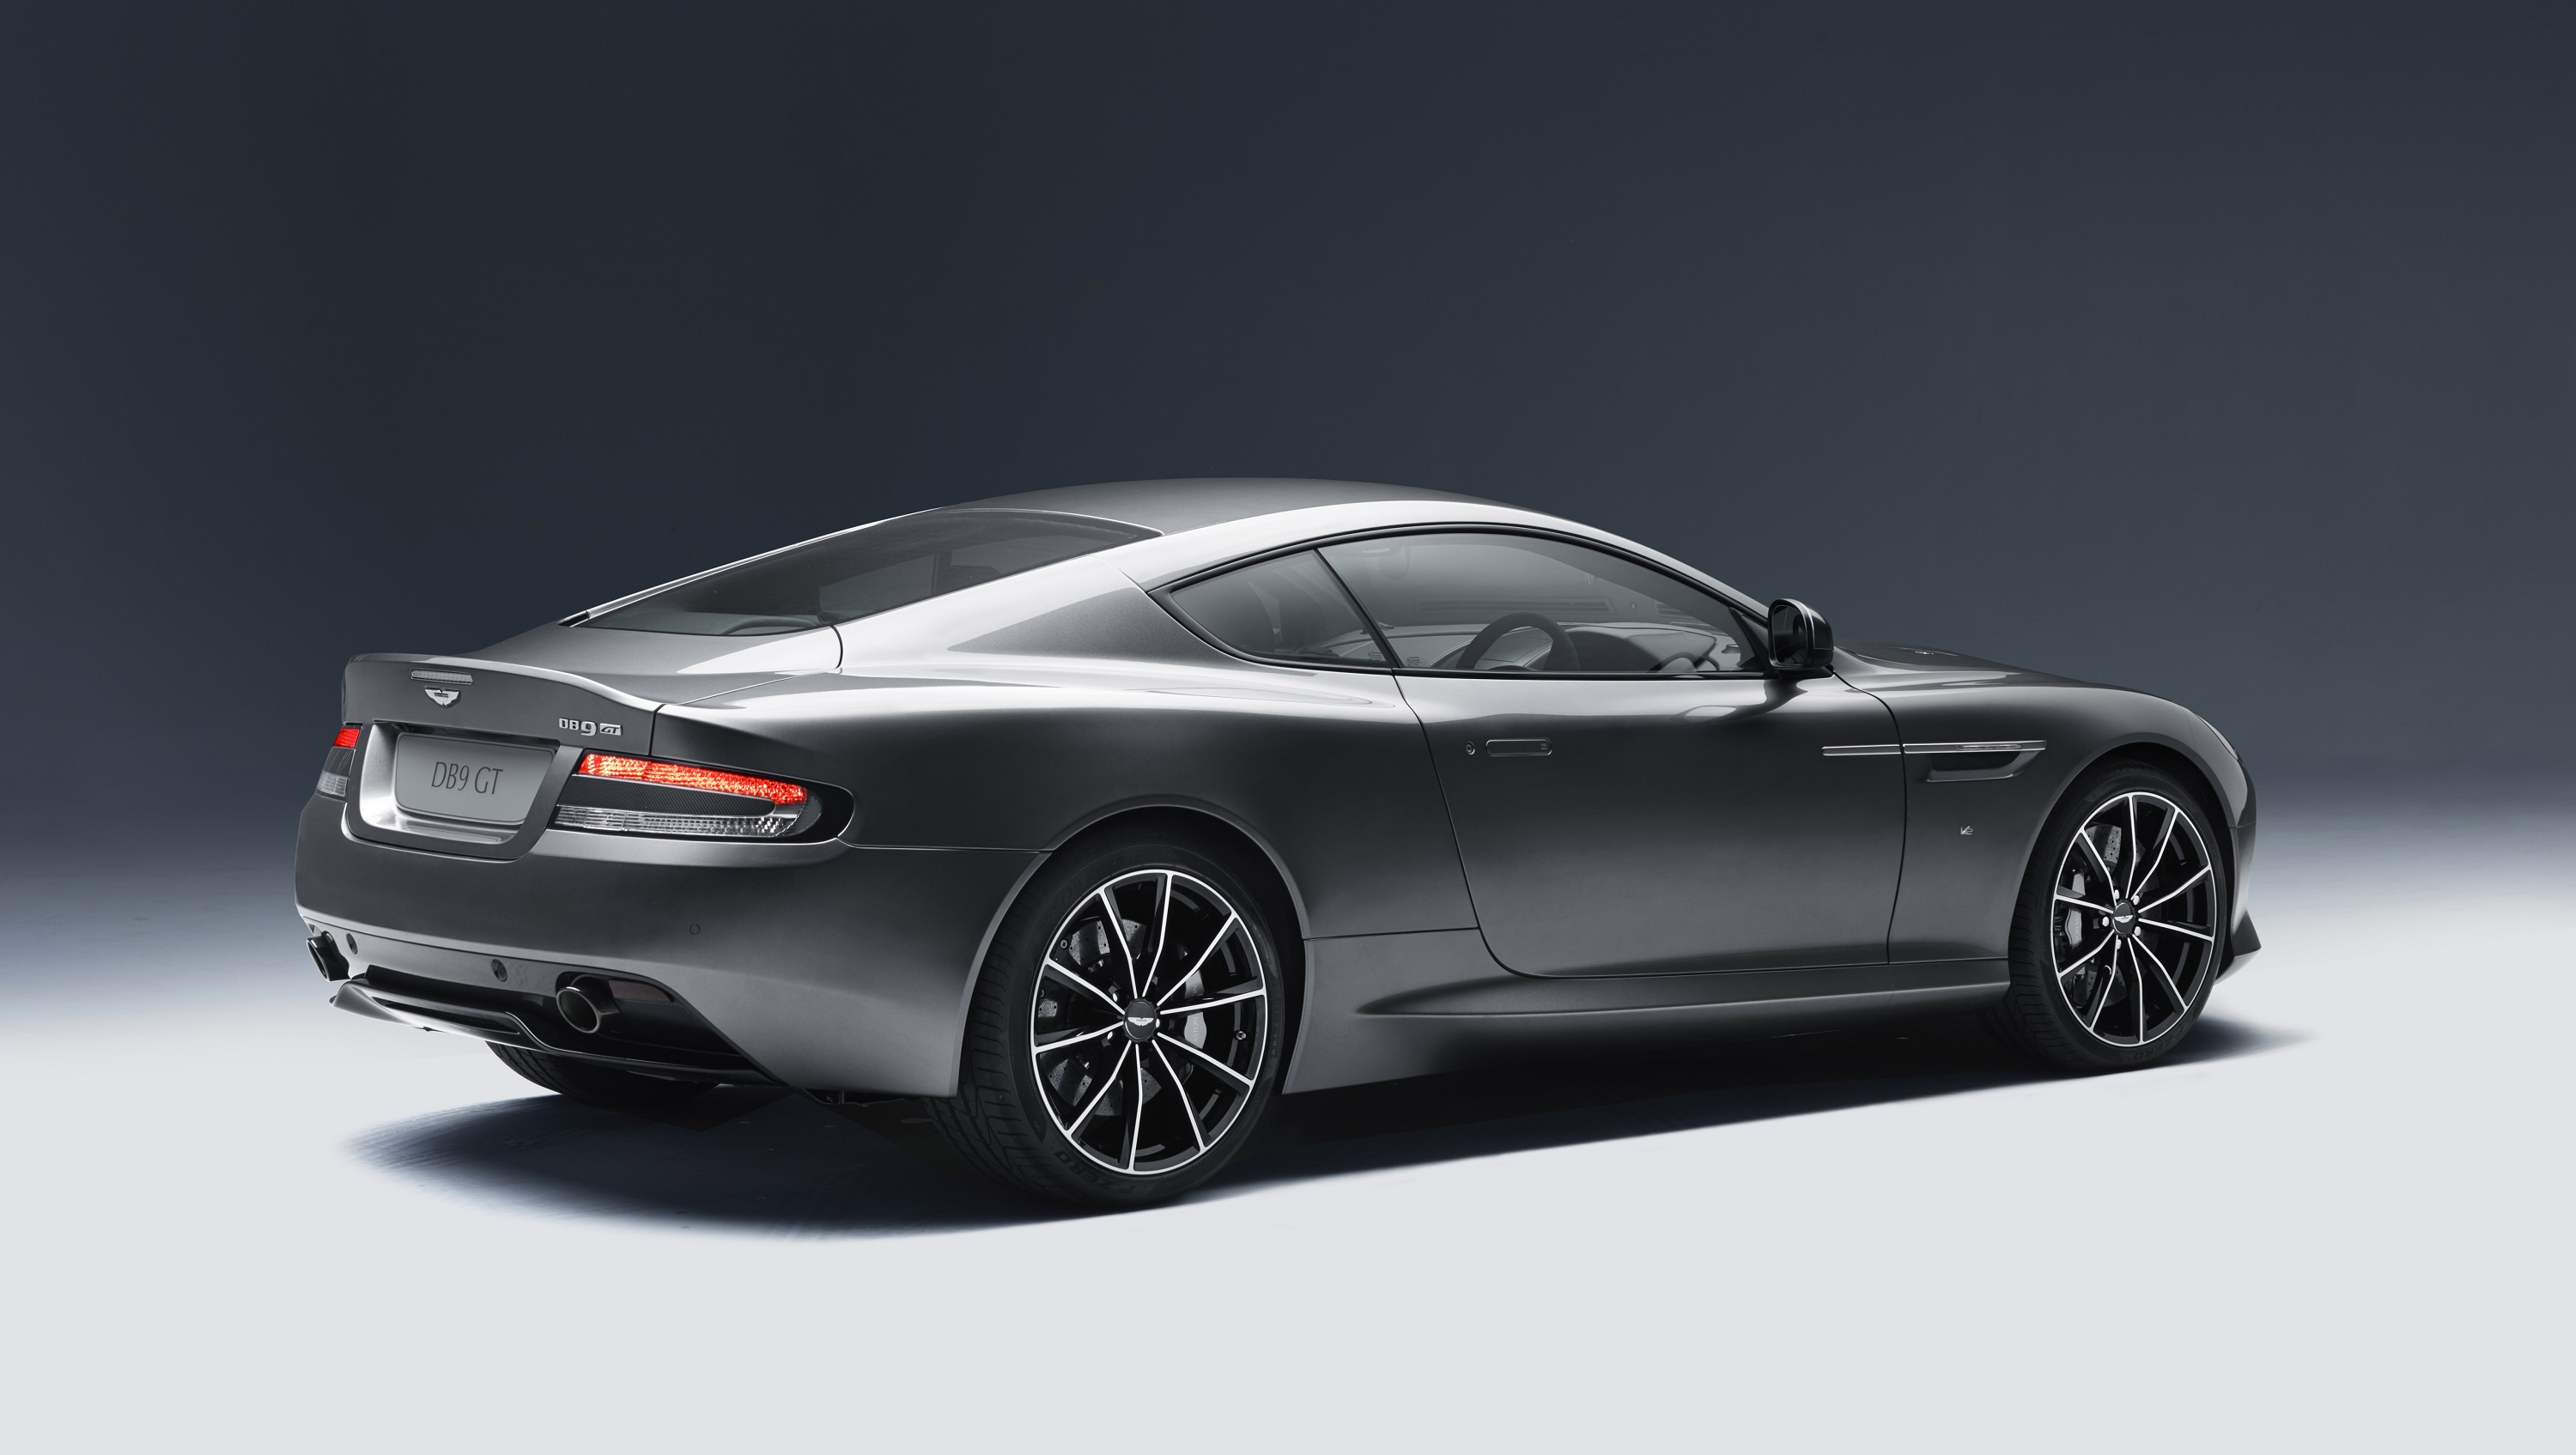 Aston Martin DB9 GT – Revealed